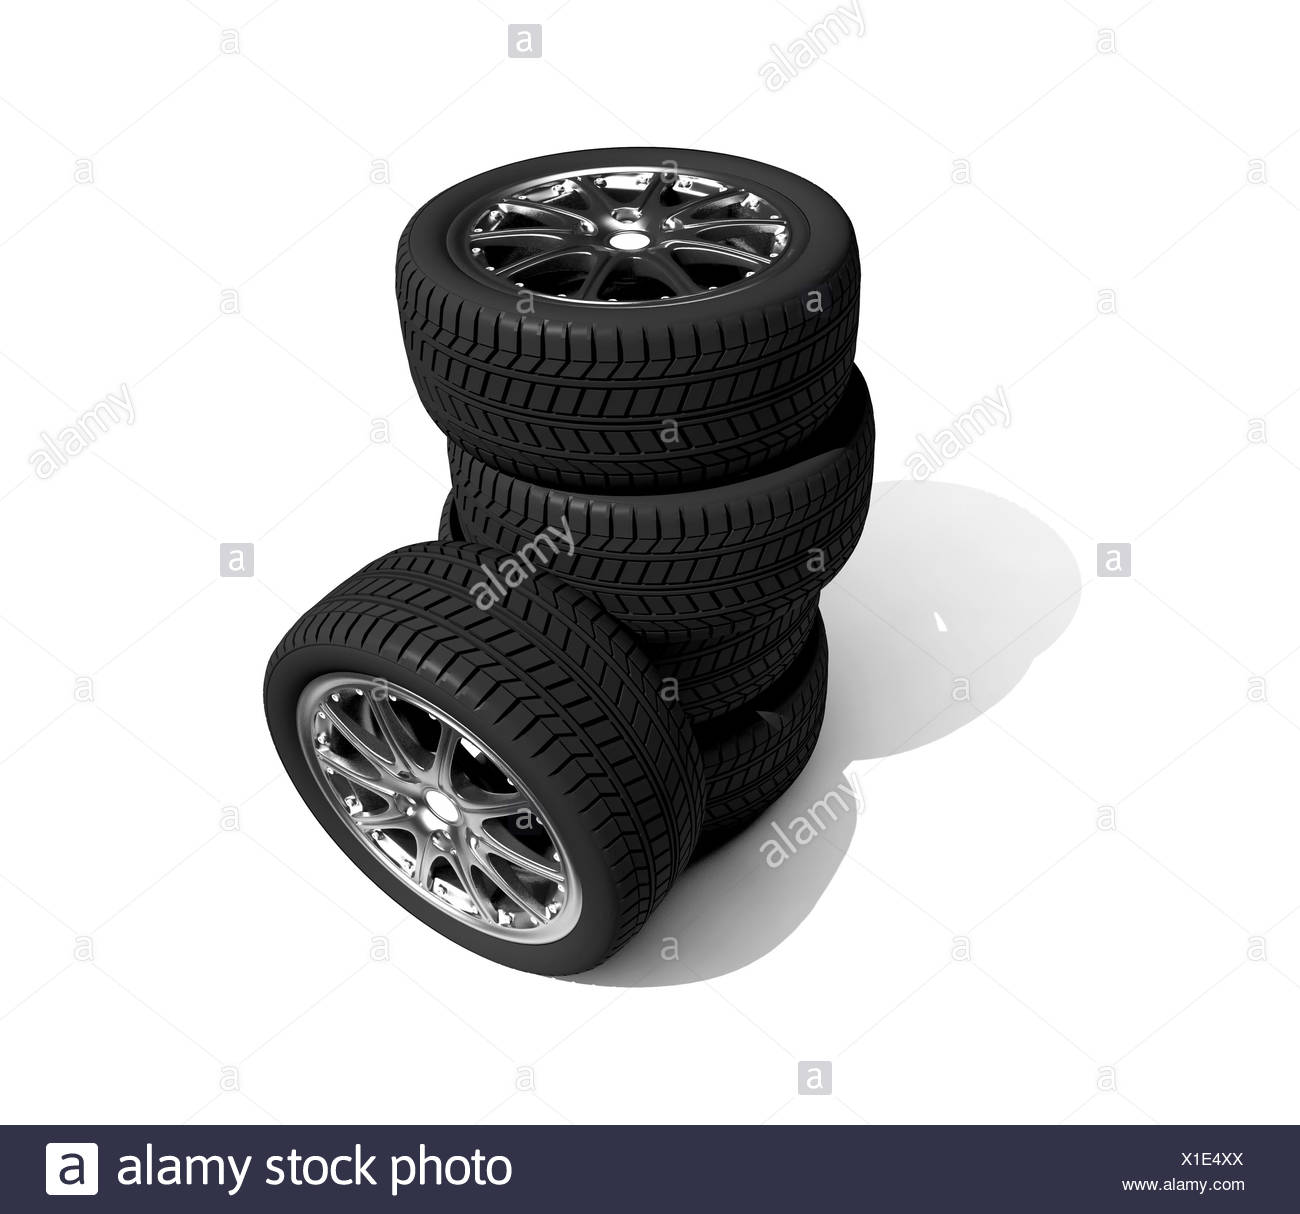 wheels with steel rims over the white background - Stock Image